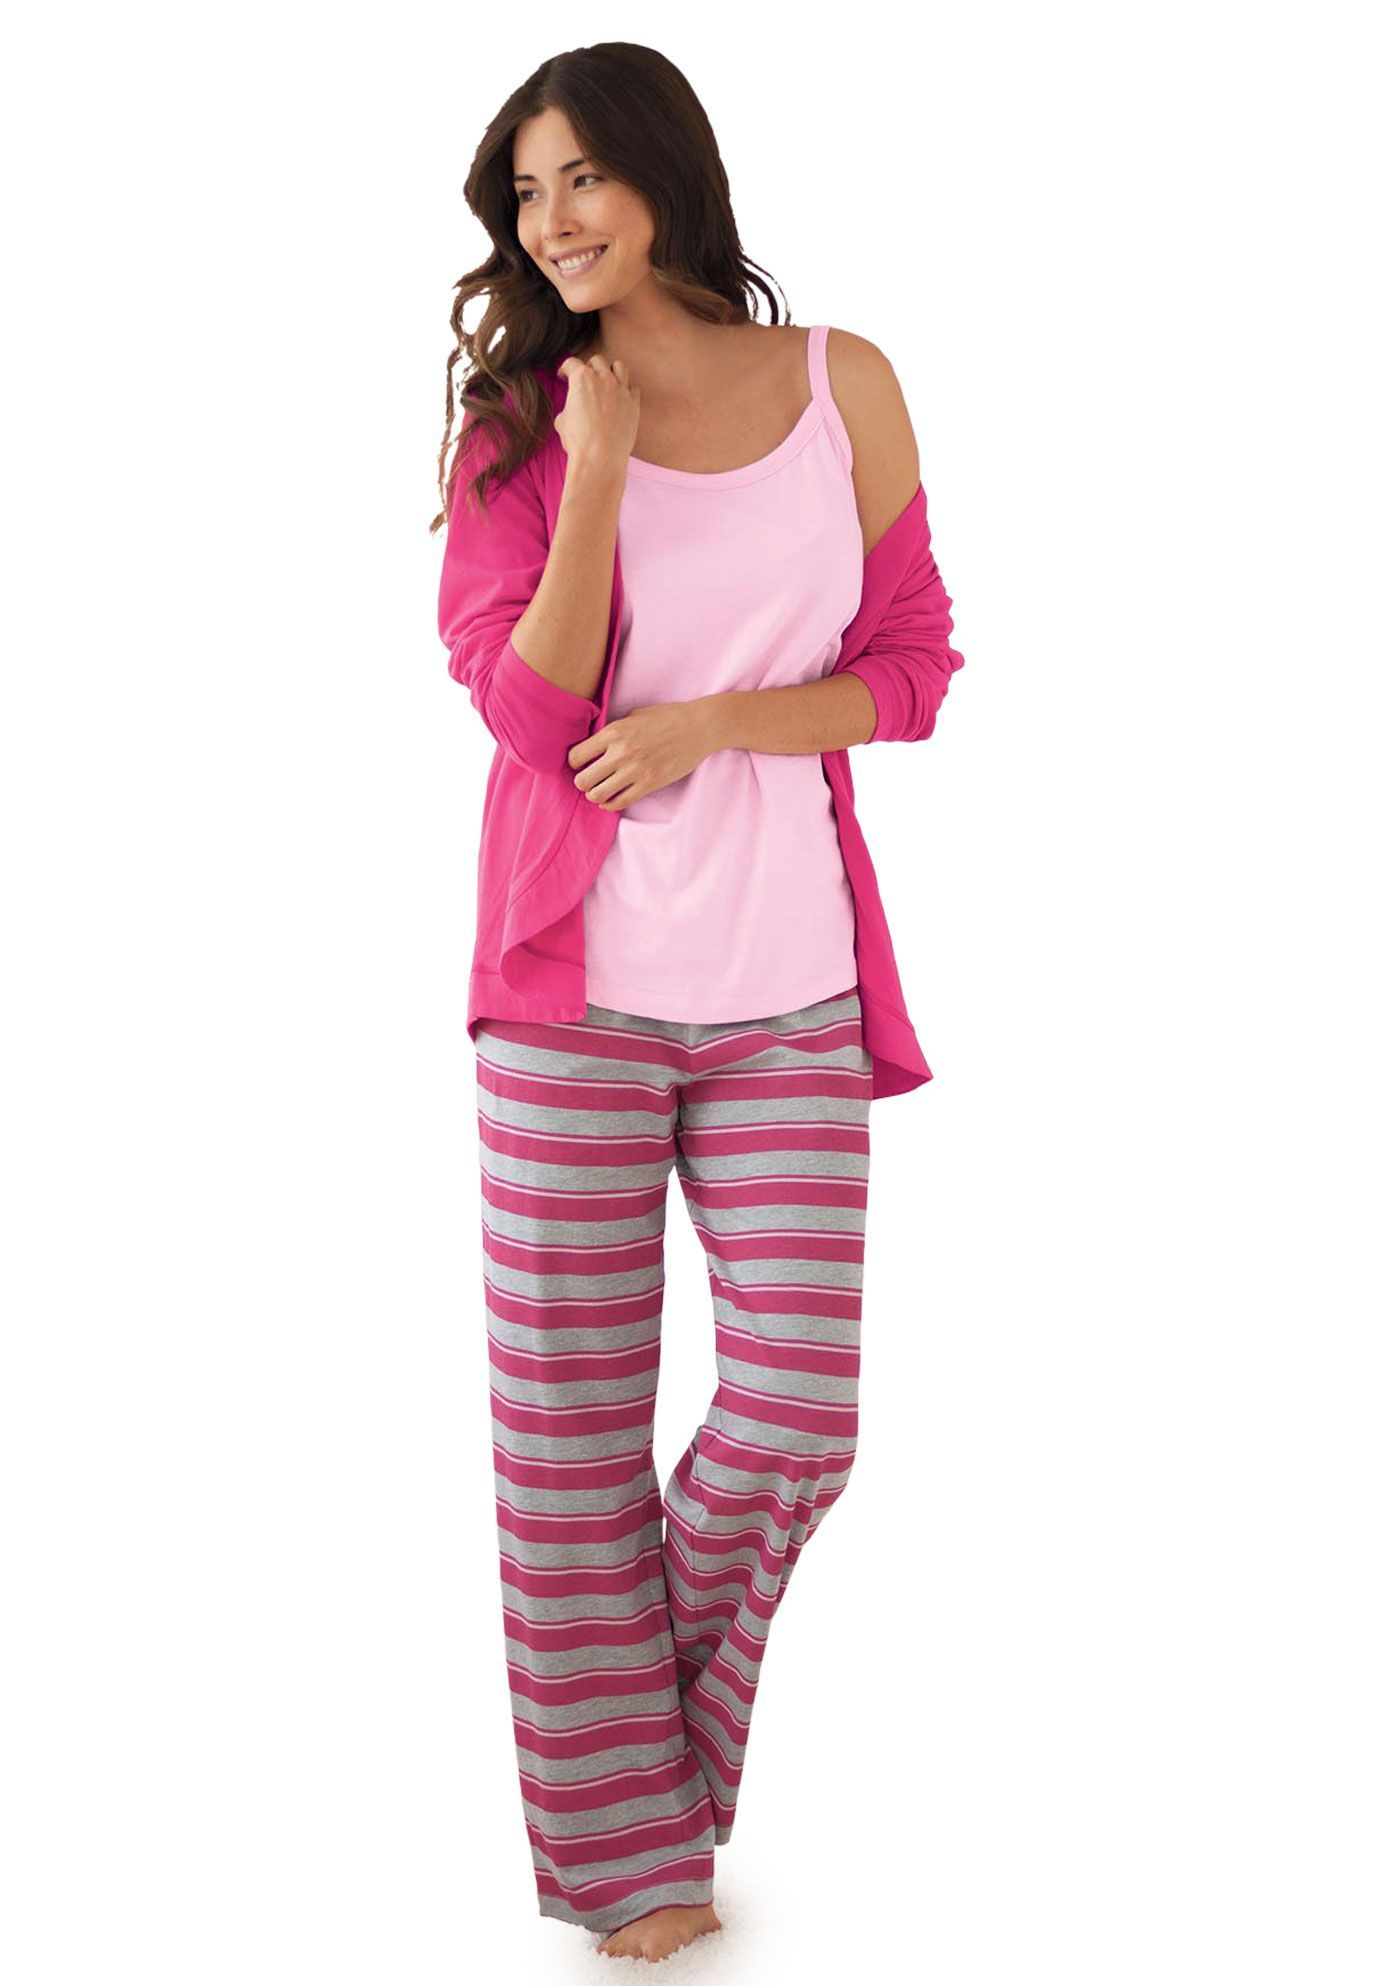 Plus Size 3-pc. cotton knit pajamas by Dreams   Co.®  50b2e6366